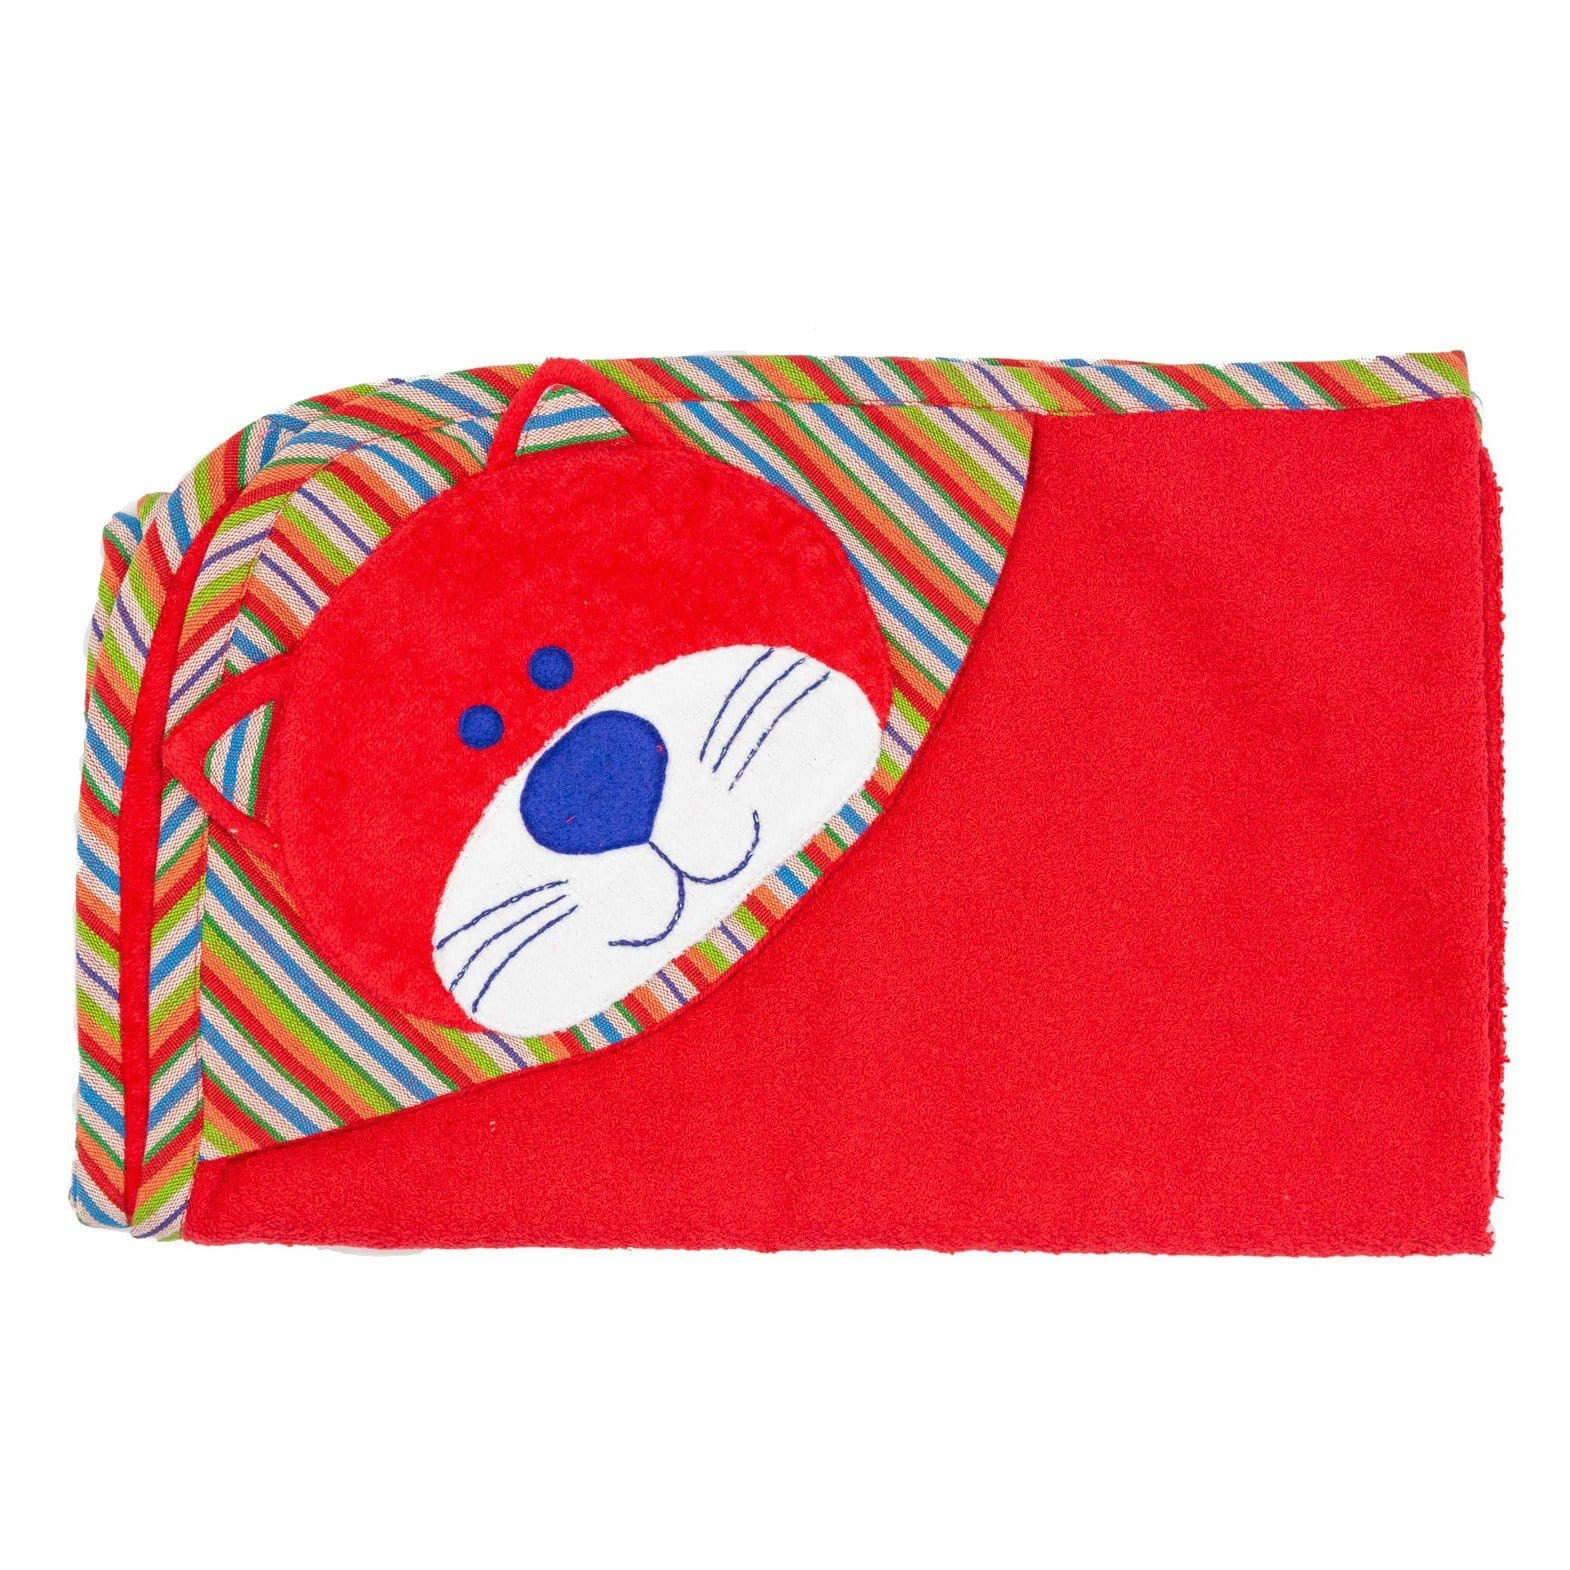 Cat Hooded Towel - Red ?id=14022296371253